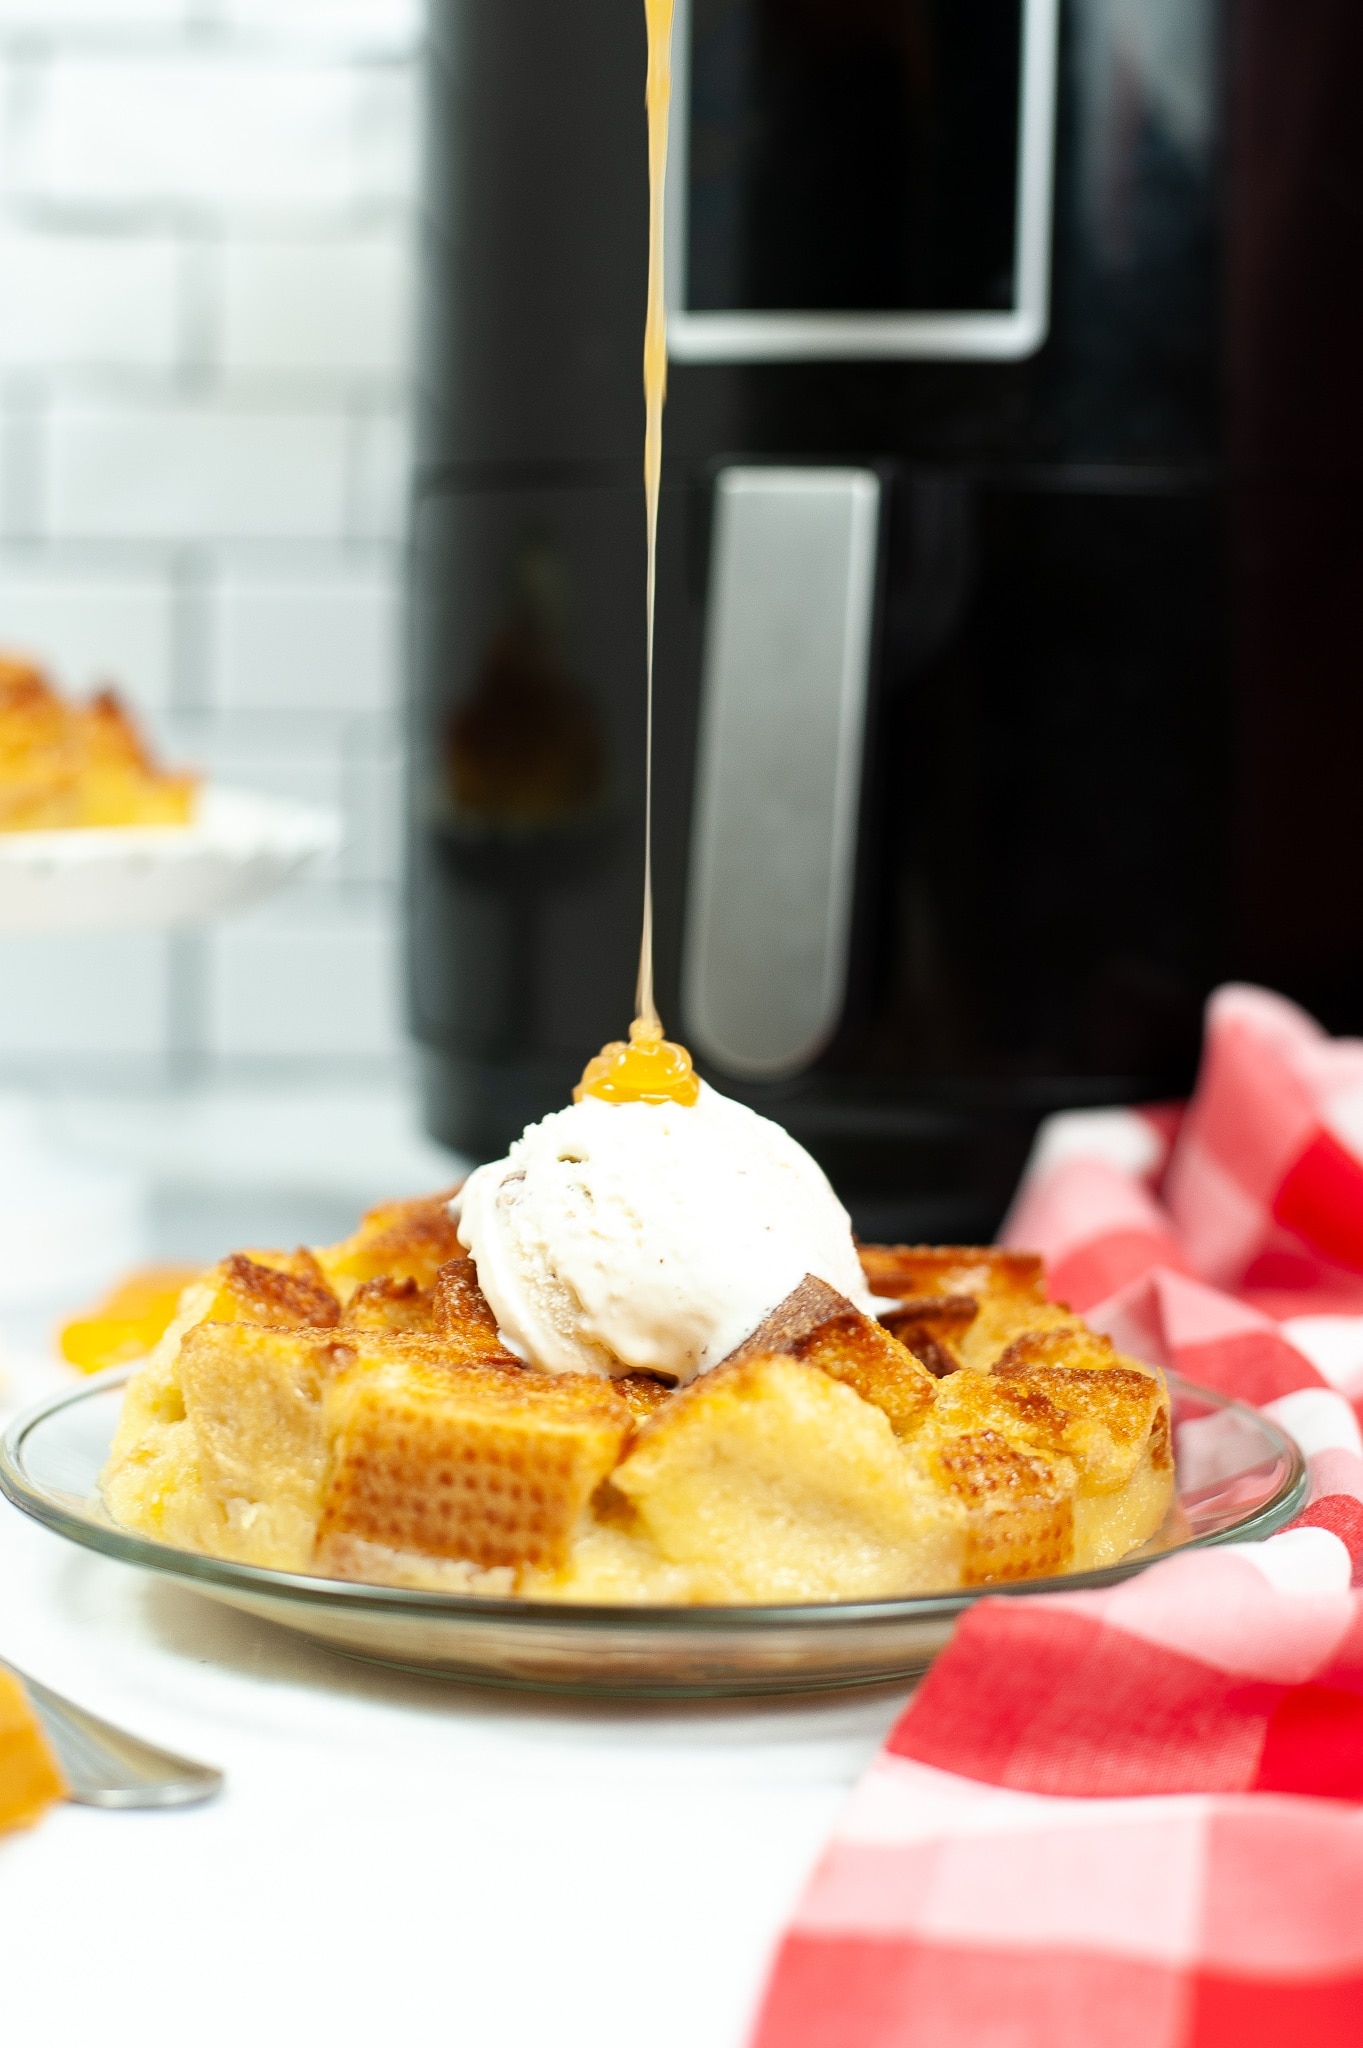 caramel sauce being poured on ice cream on top of air fryer bread pudding on plate